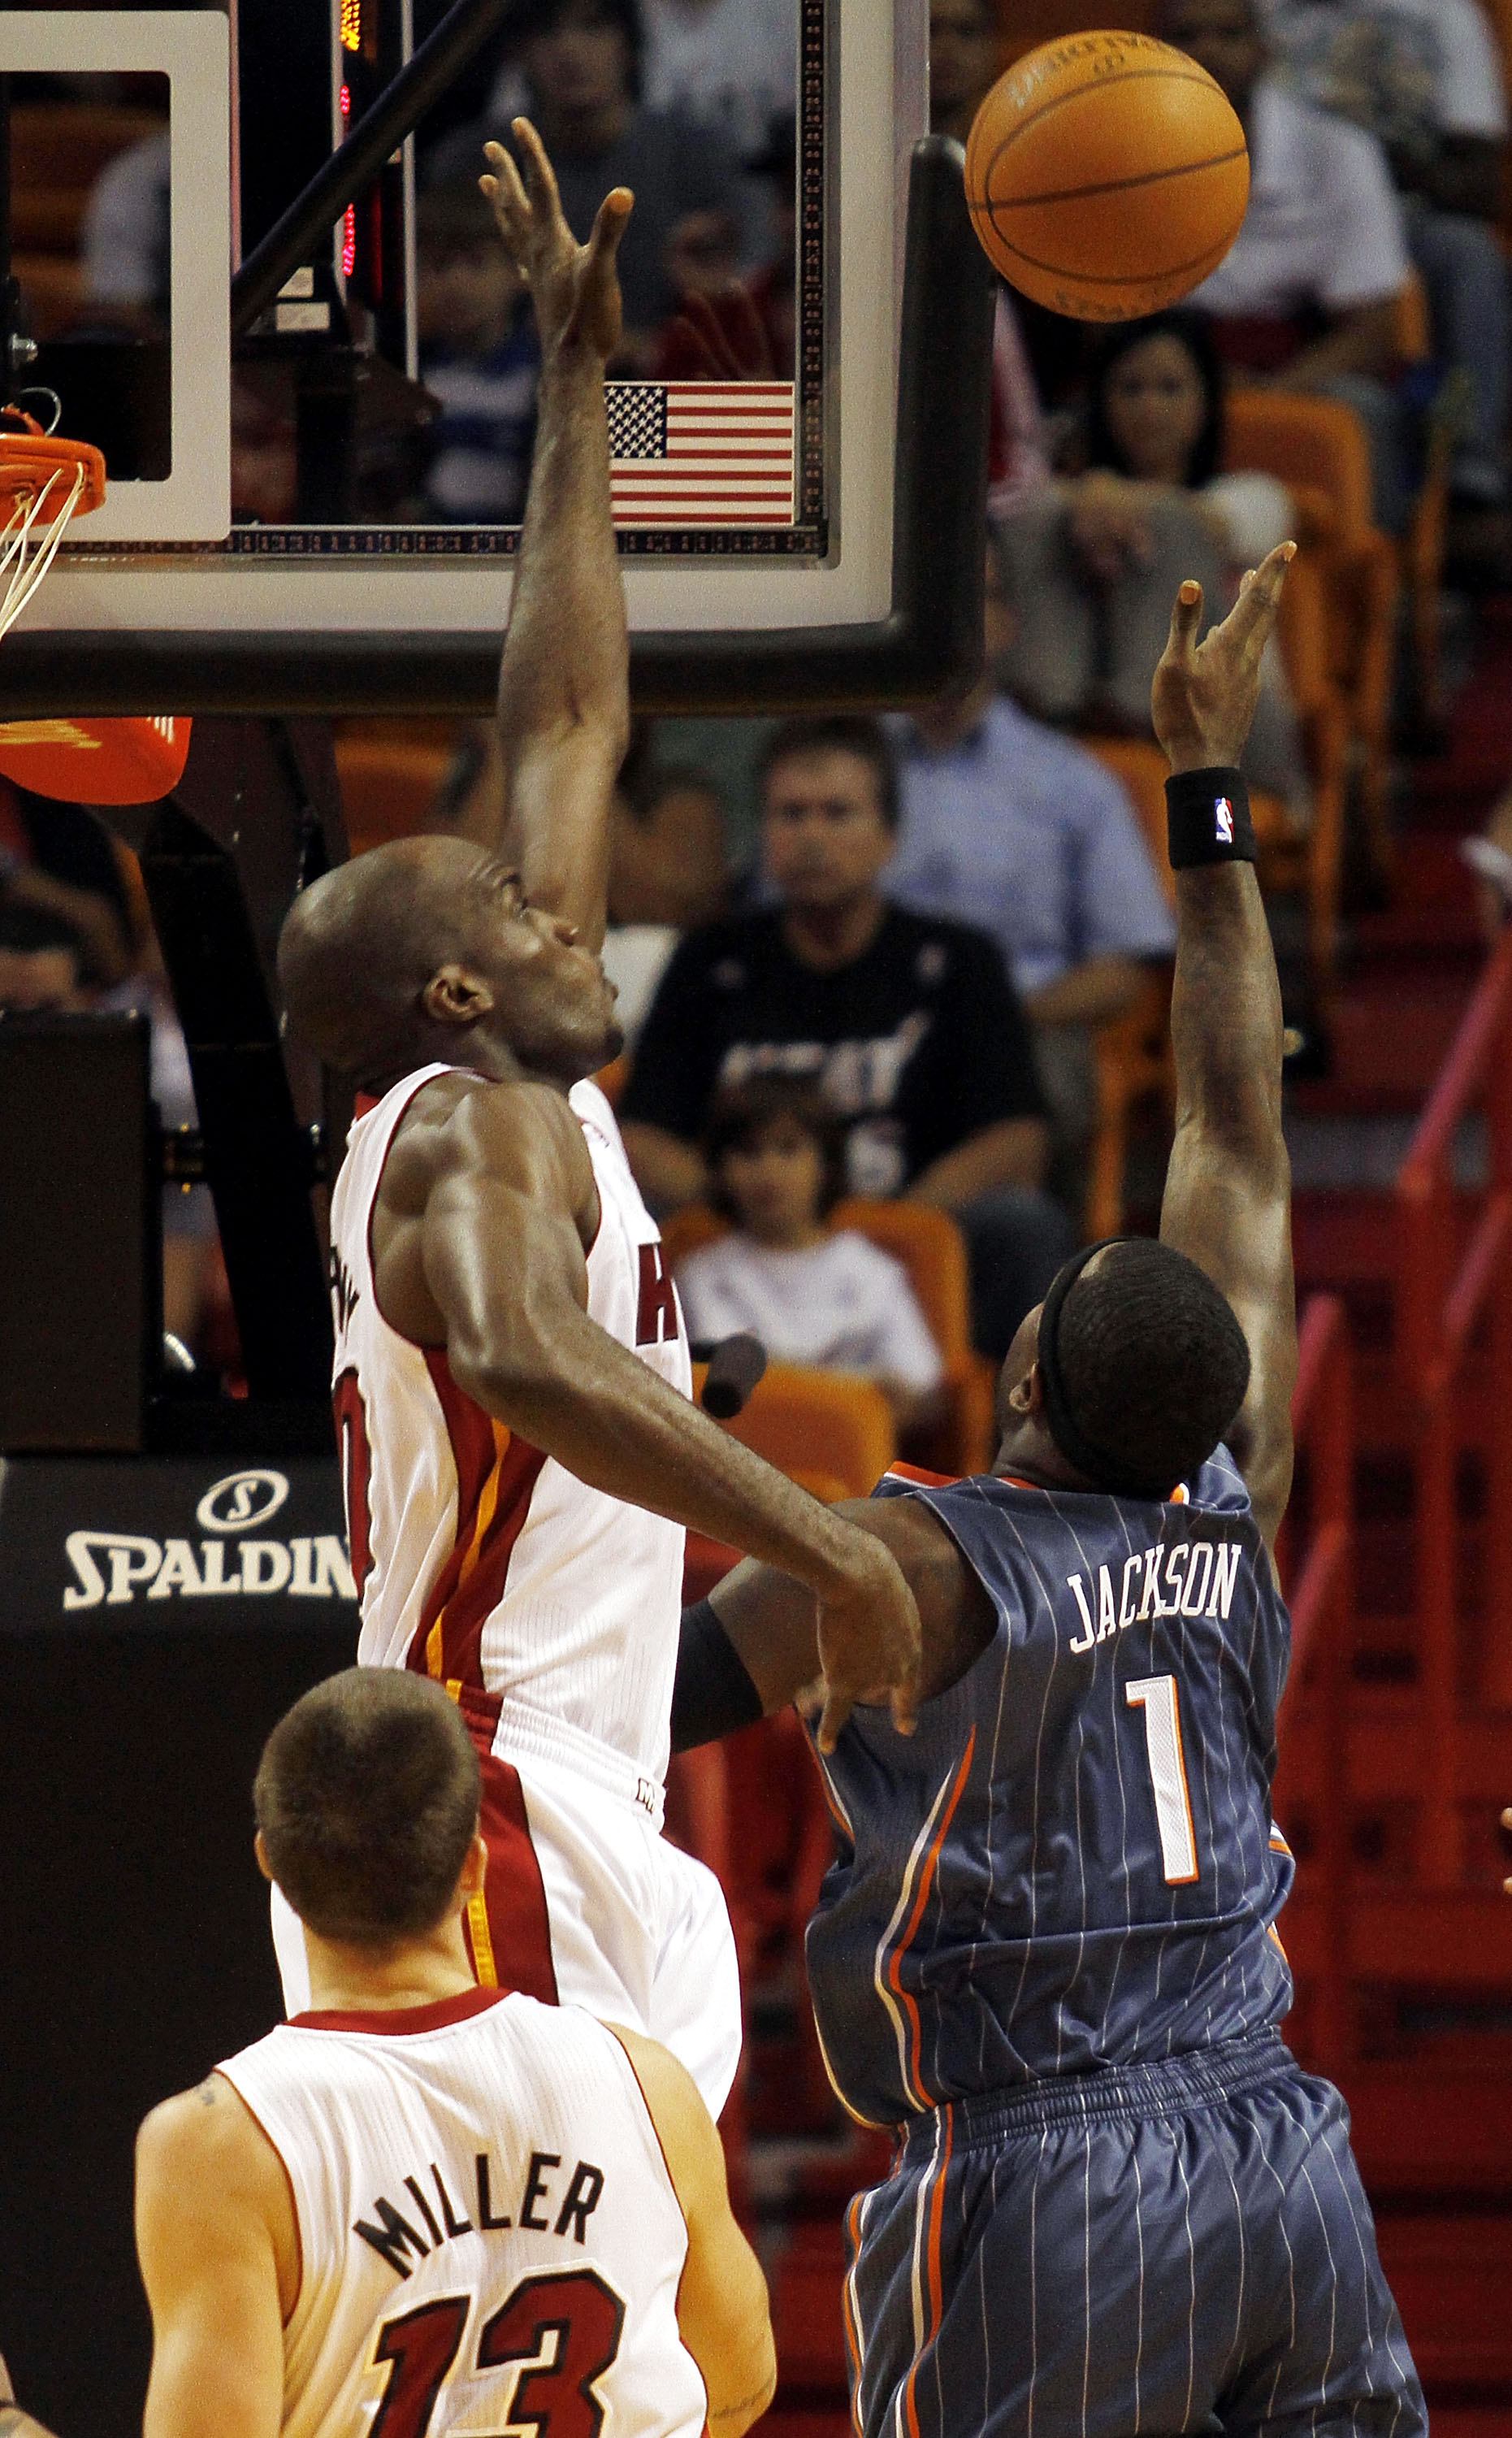 MIAMI - OCTOBER 18:  Center Joel Anthony #50 of the Miami Heat blocks a shot against Forward Stephen Jackson #1 of the Charlotte Bobcats on October 18, 2010 at American Airlines Arena in Miami, Florida. NOTE TO USER: User expressly acknowledges and agrees